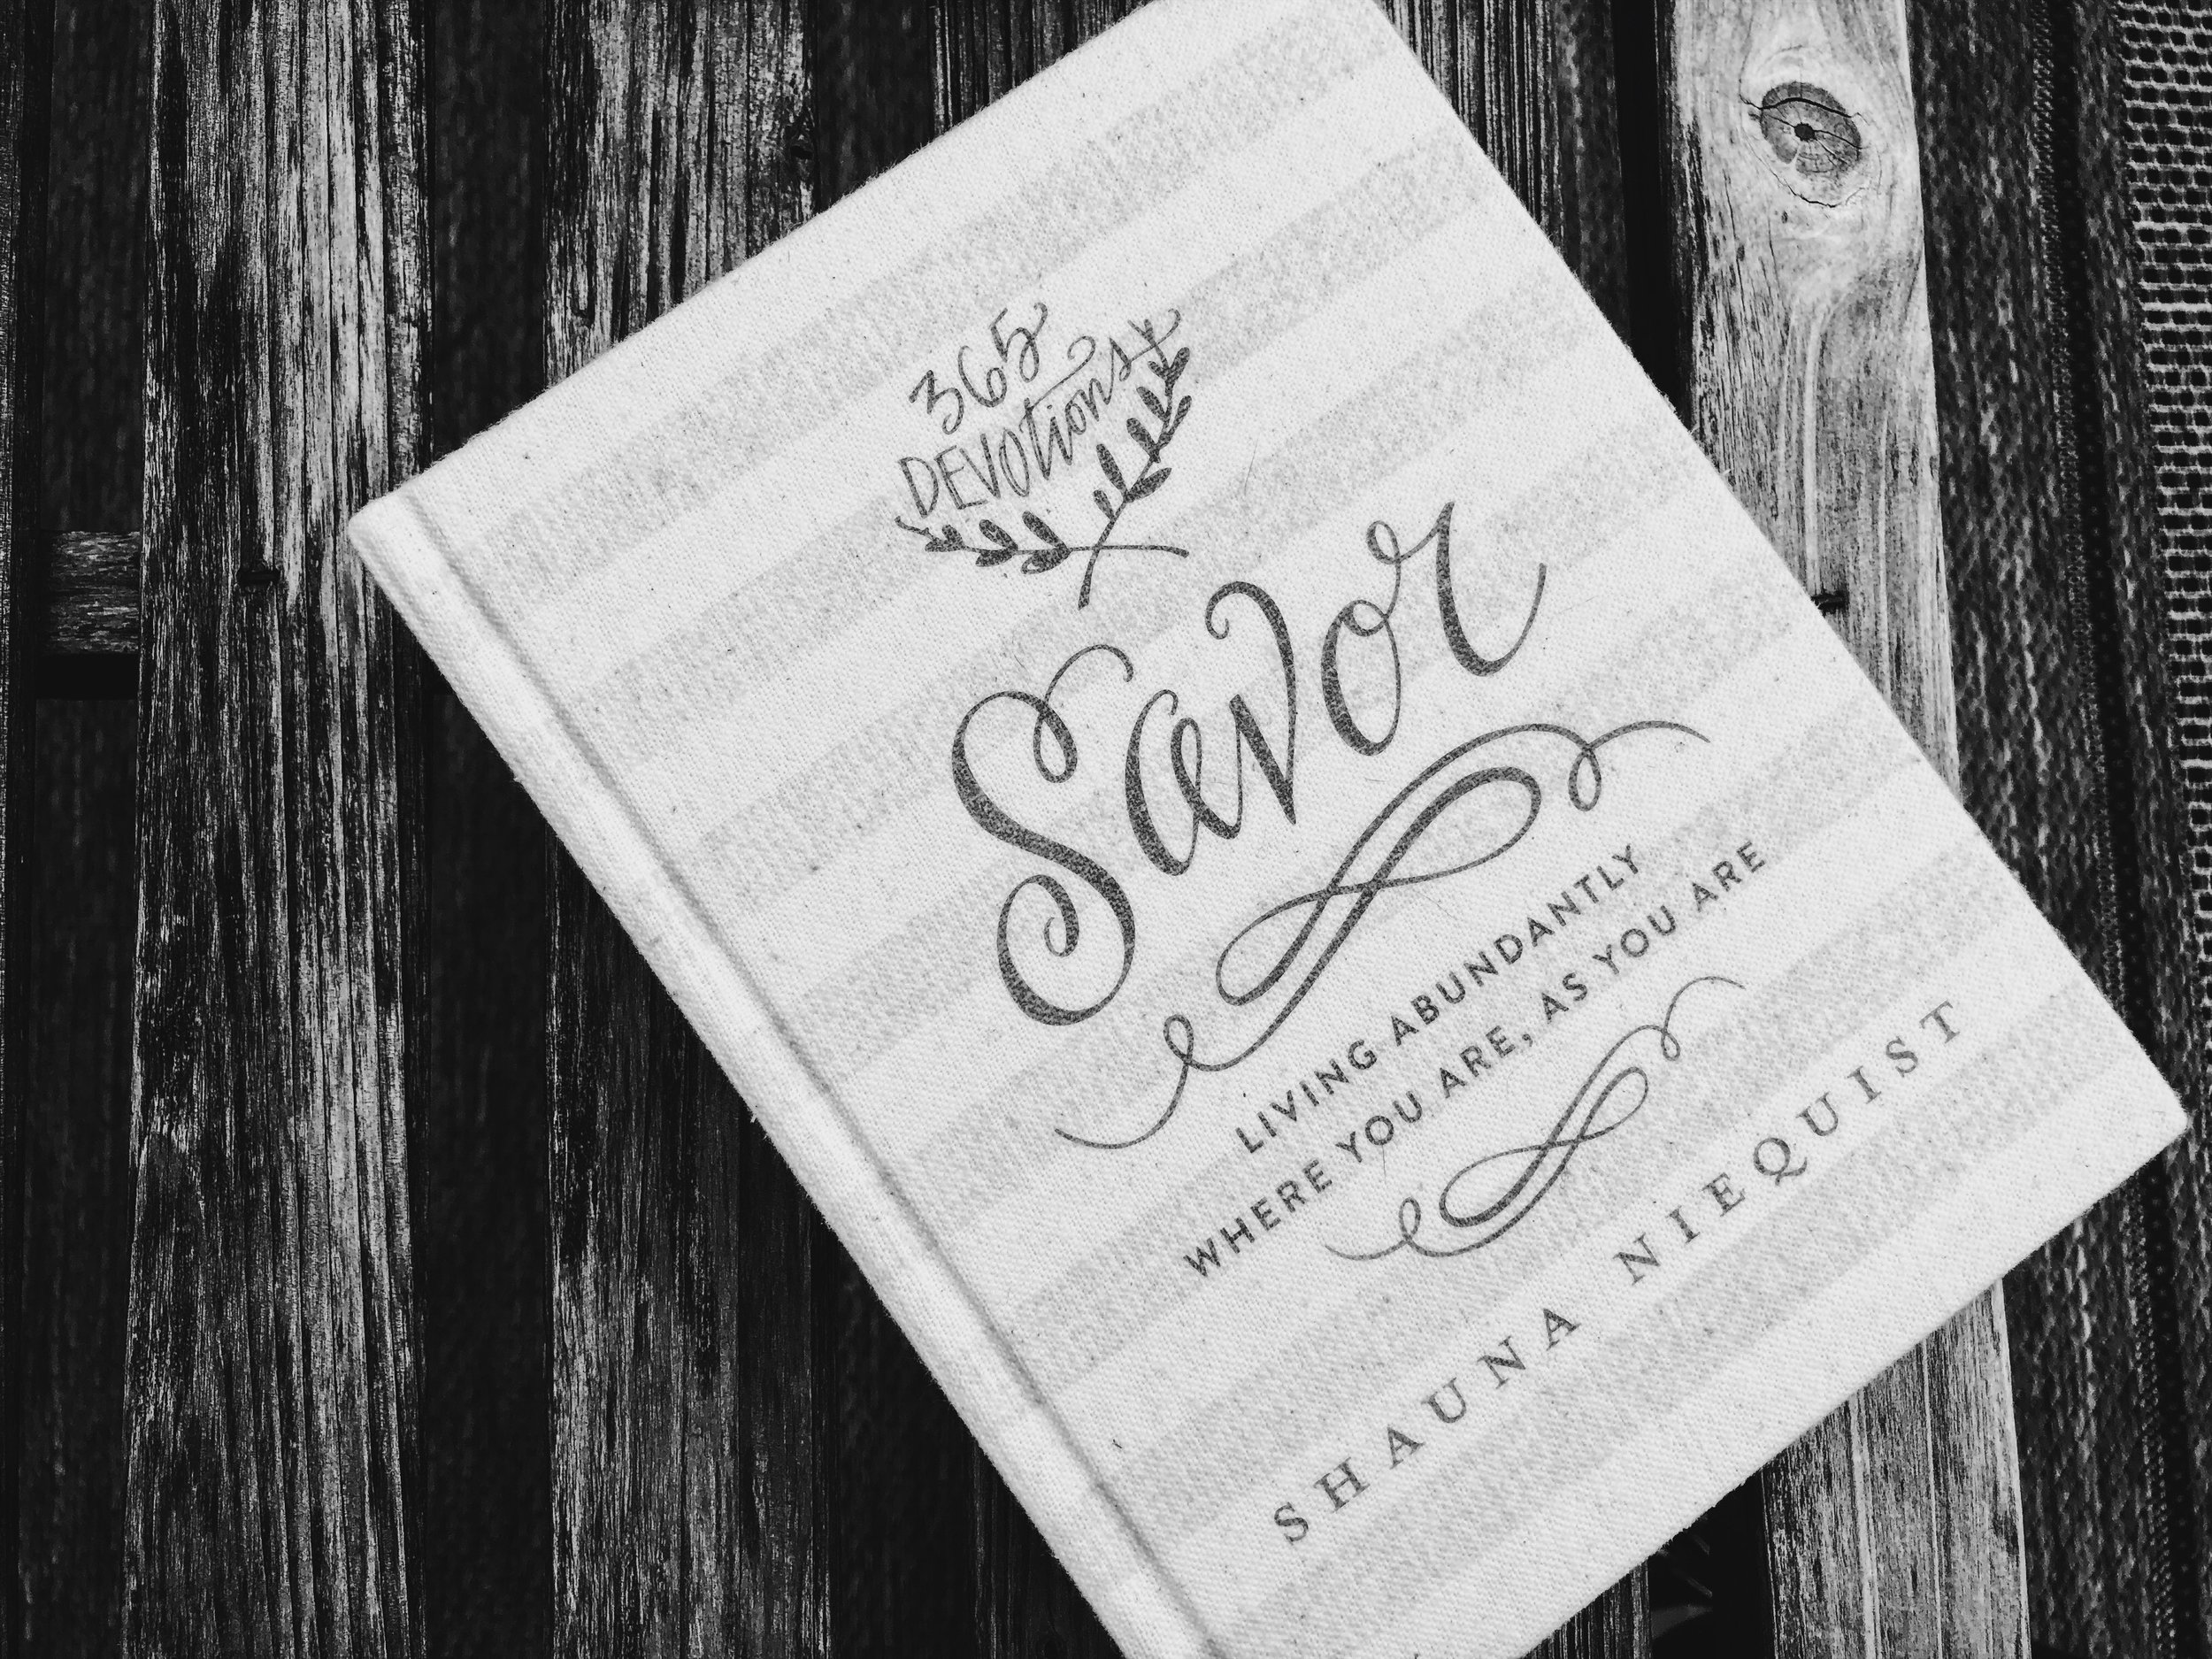 click here to grab your own copy of this amazing devotional